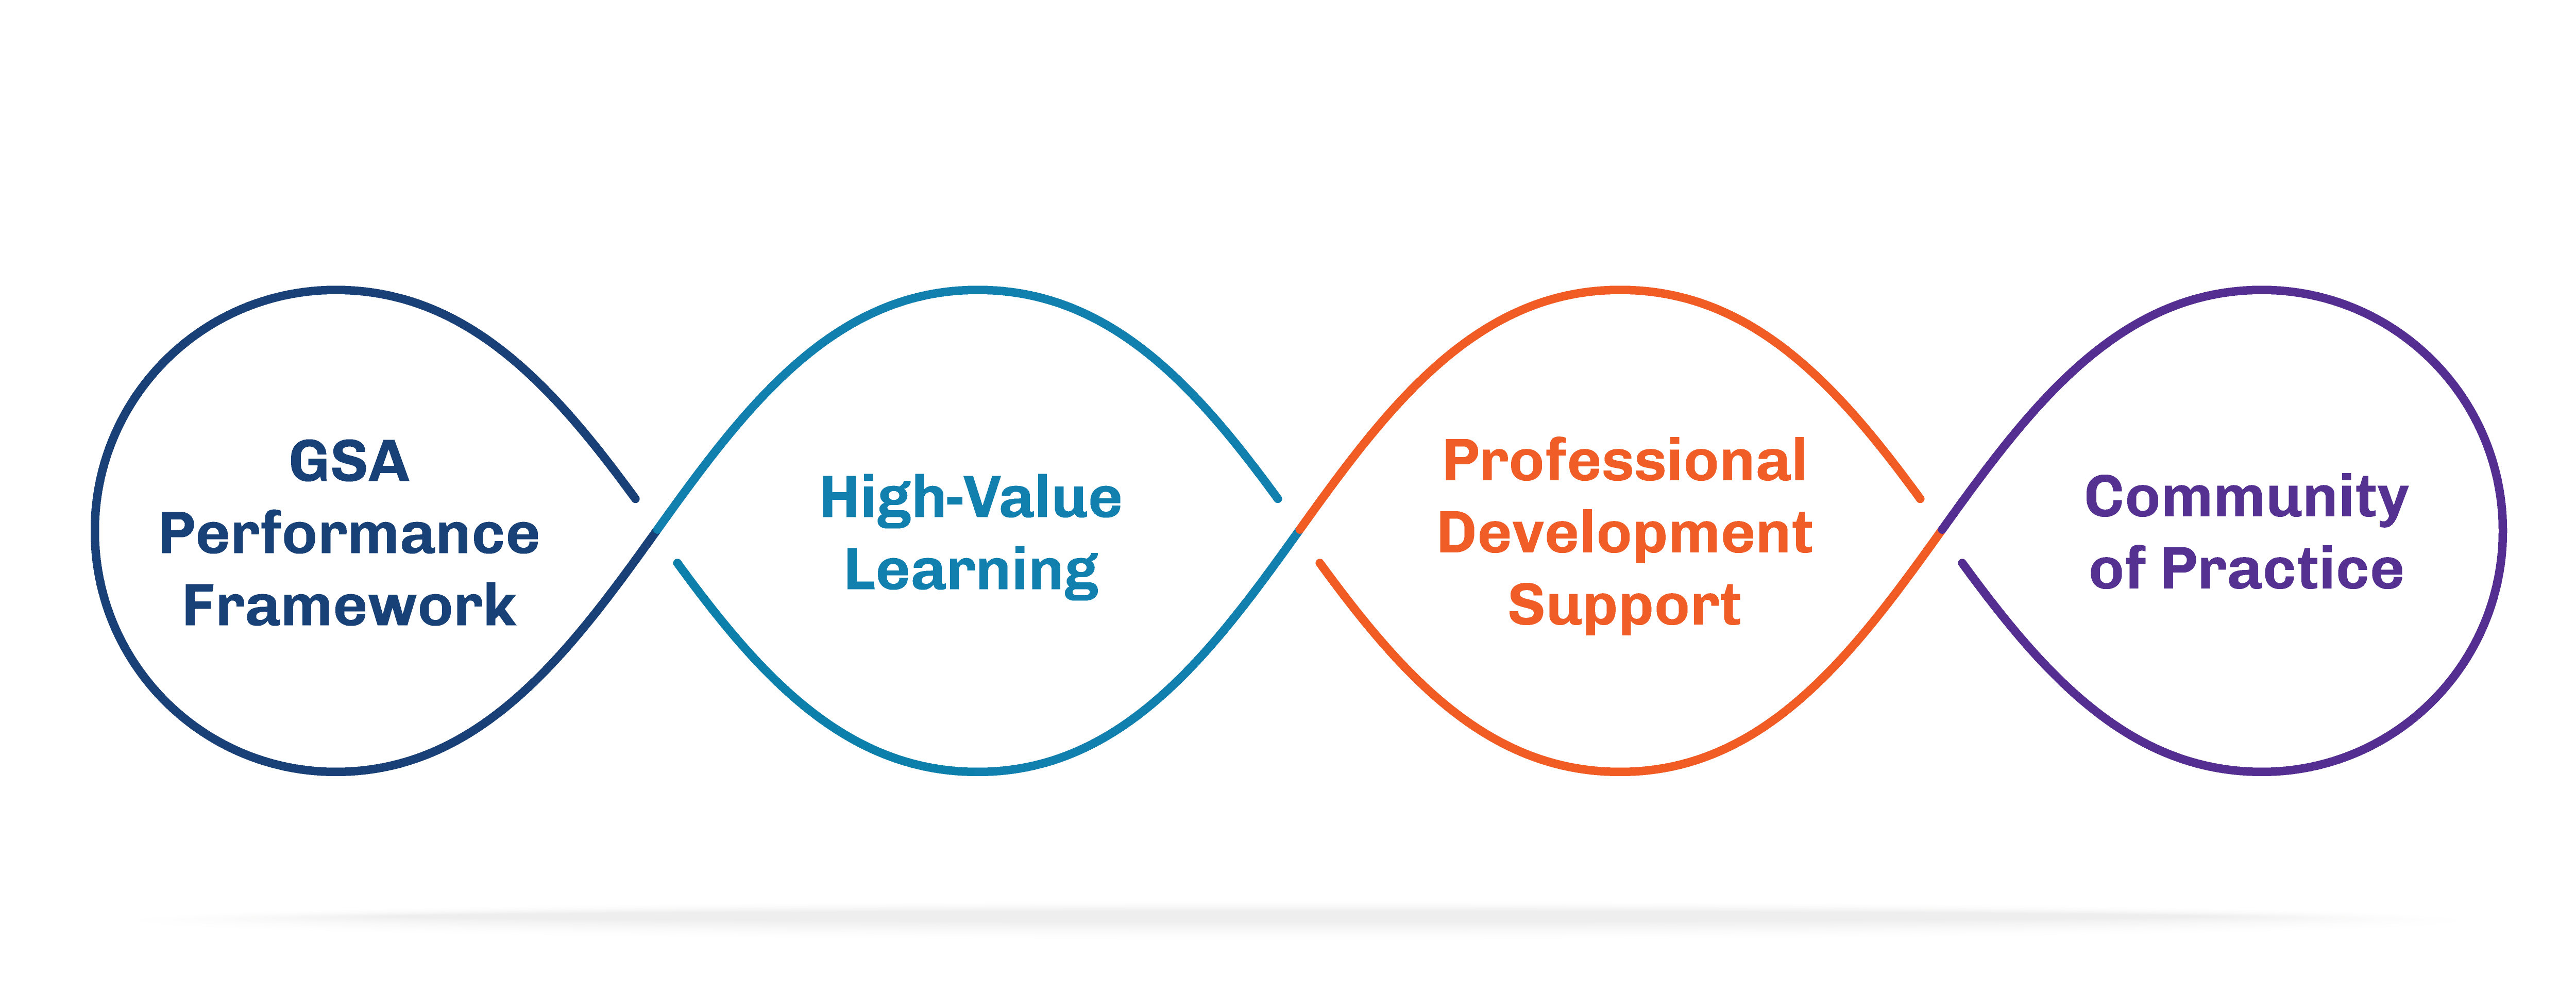 Four bubbles explaining the key components of the GSA Professional Development Initiative: the performance framework, high-value learning, professional development support, and community of practice.